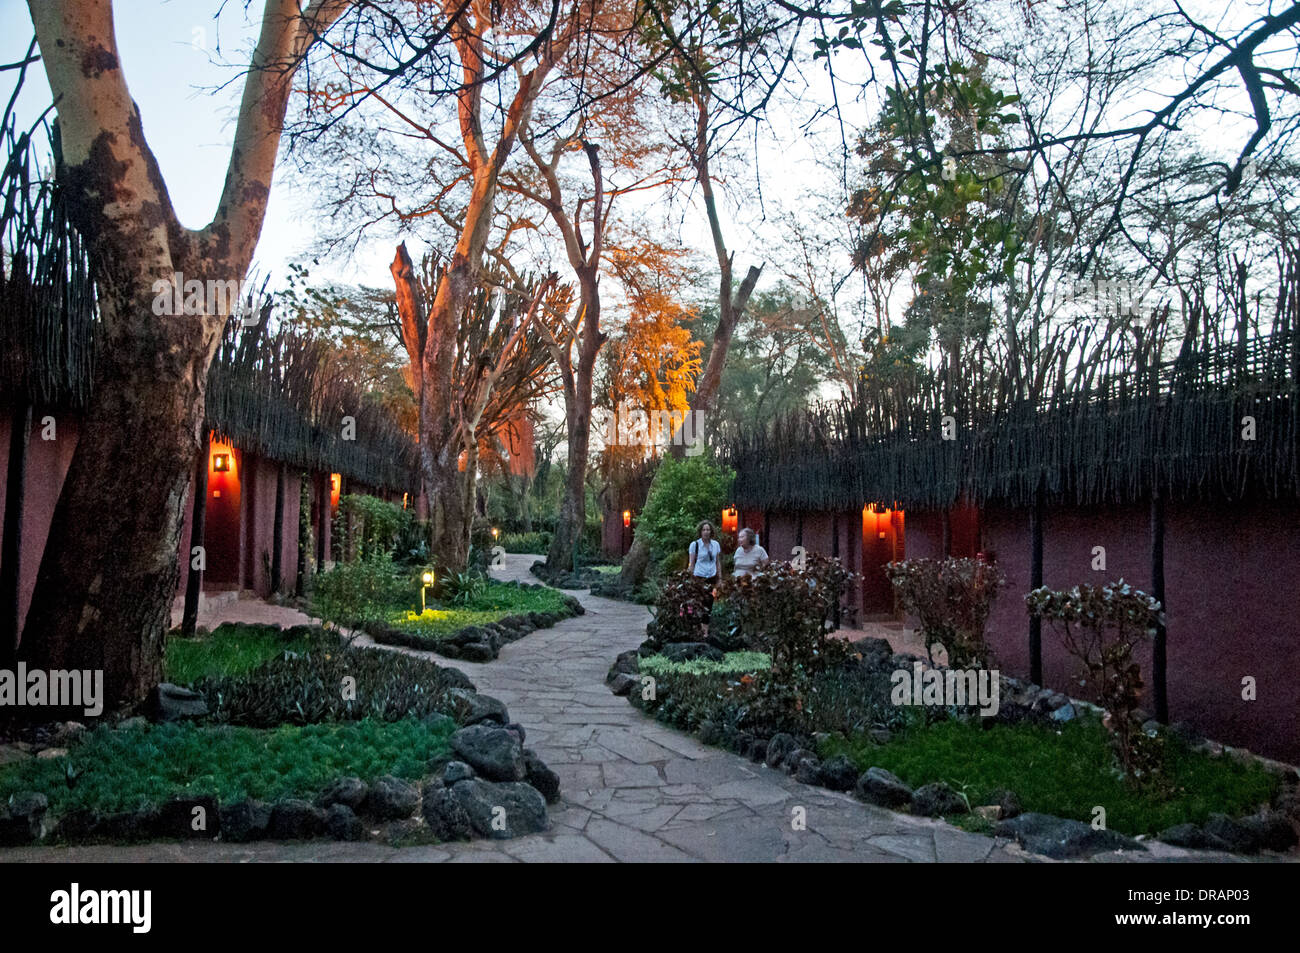 Grounds of Amboseli Serena Lodge in evening with lights Amboseli National Park Kenya East Africa - Stock Image